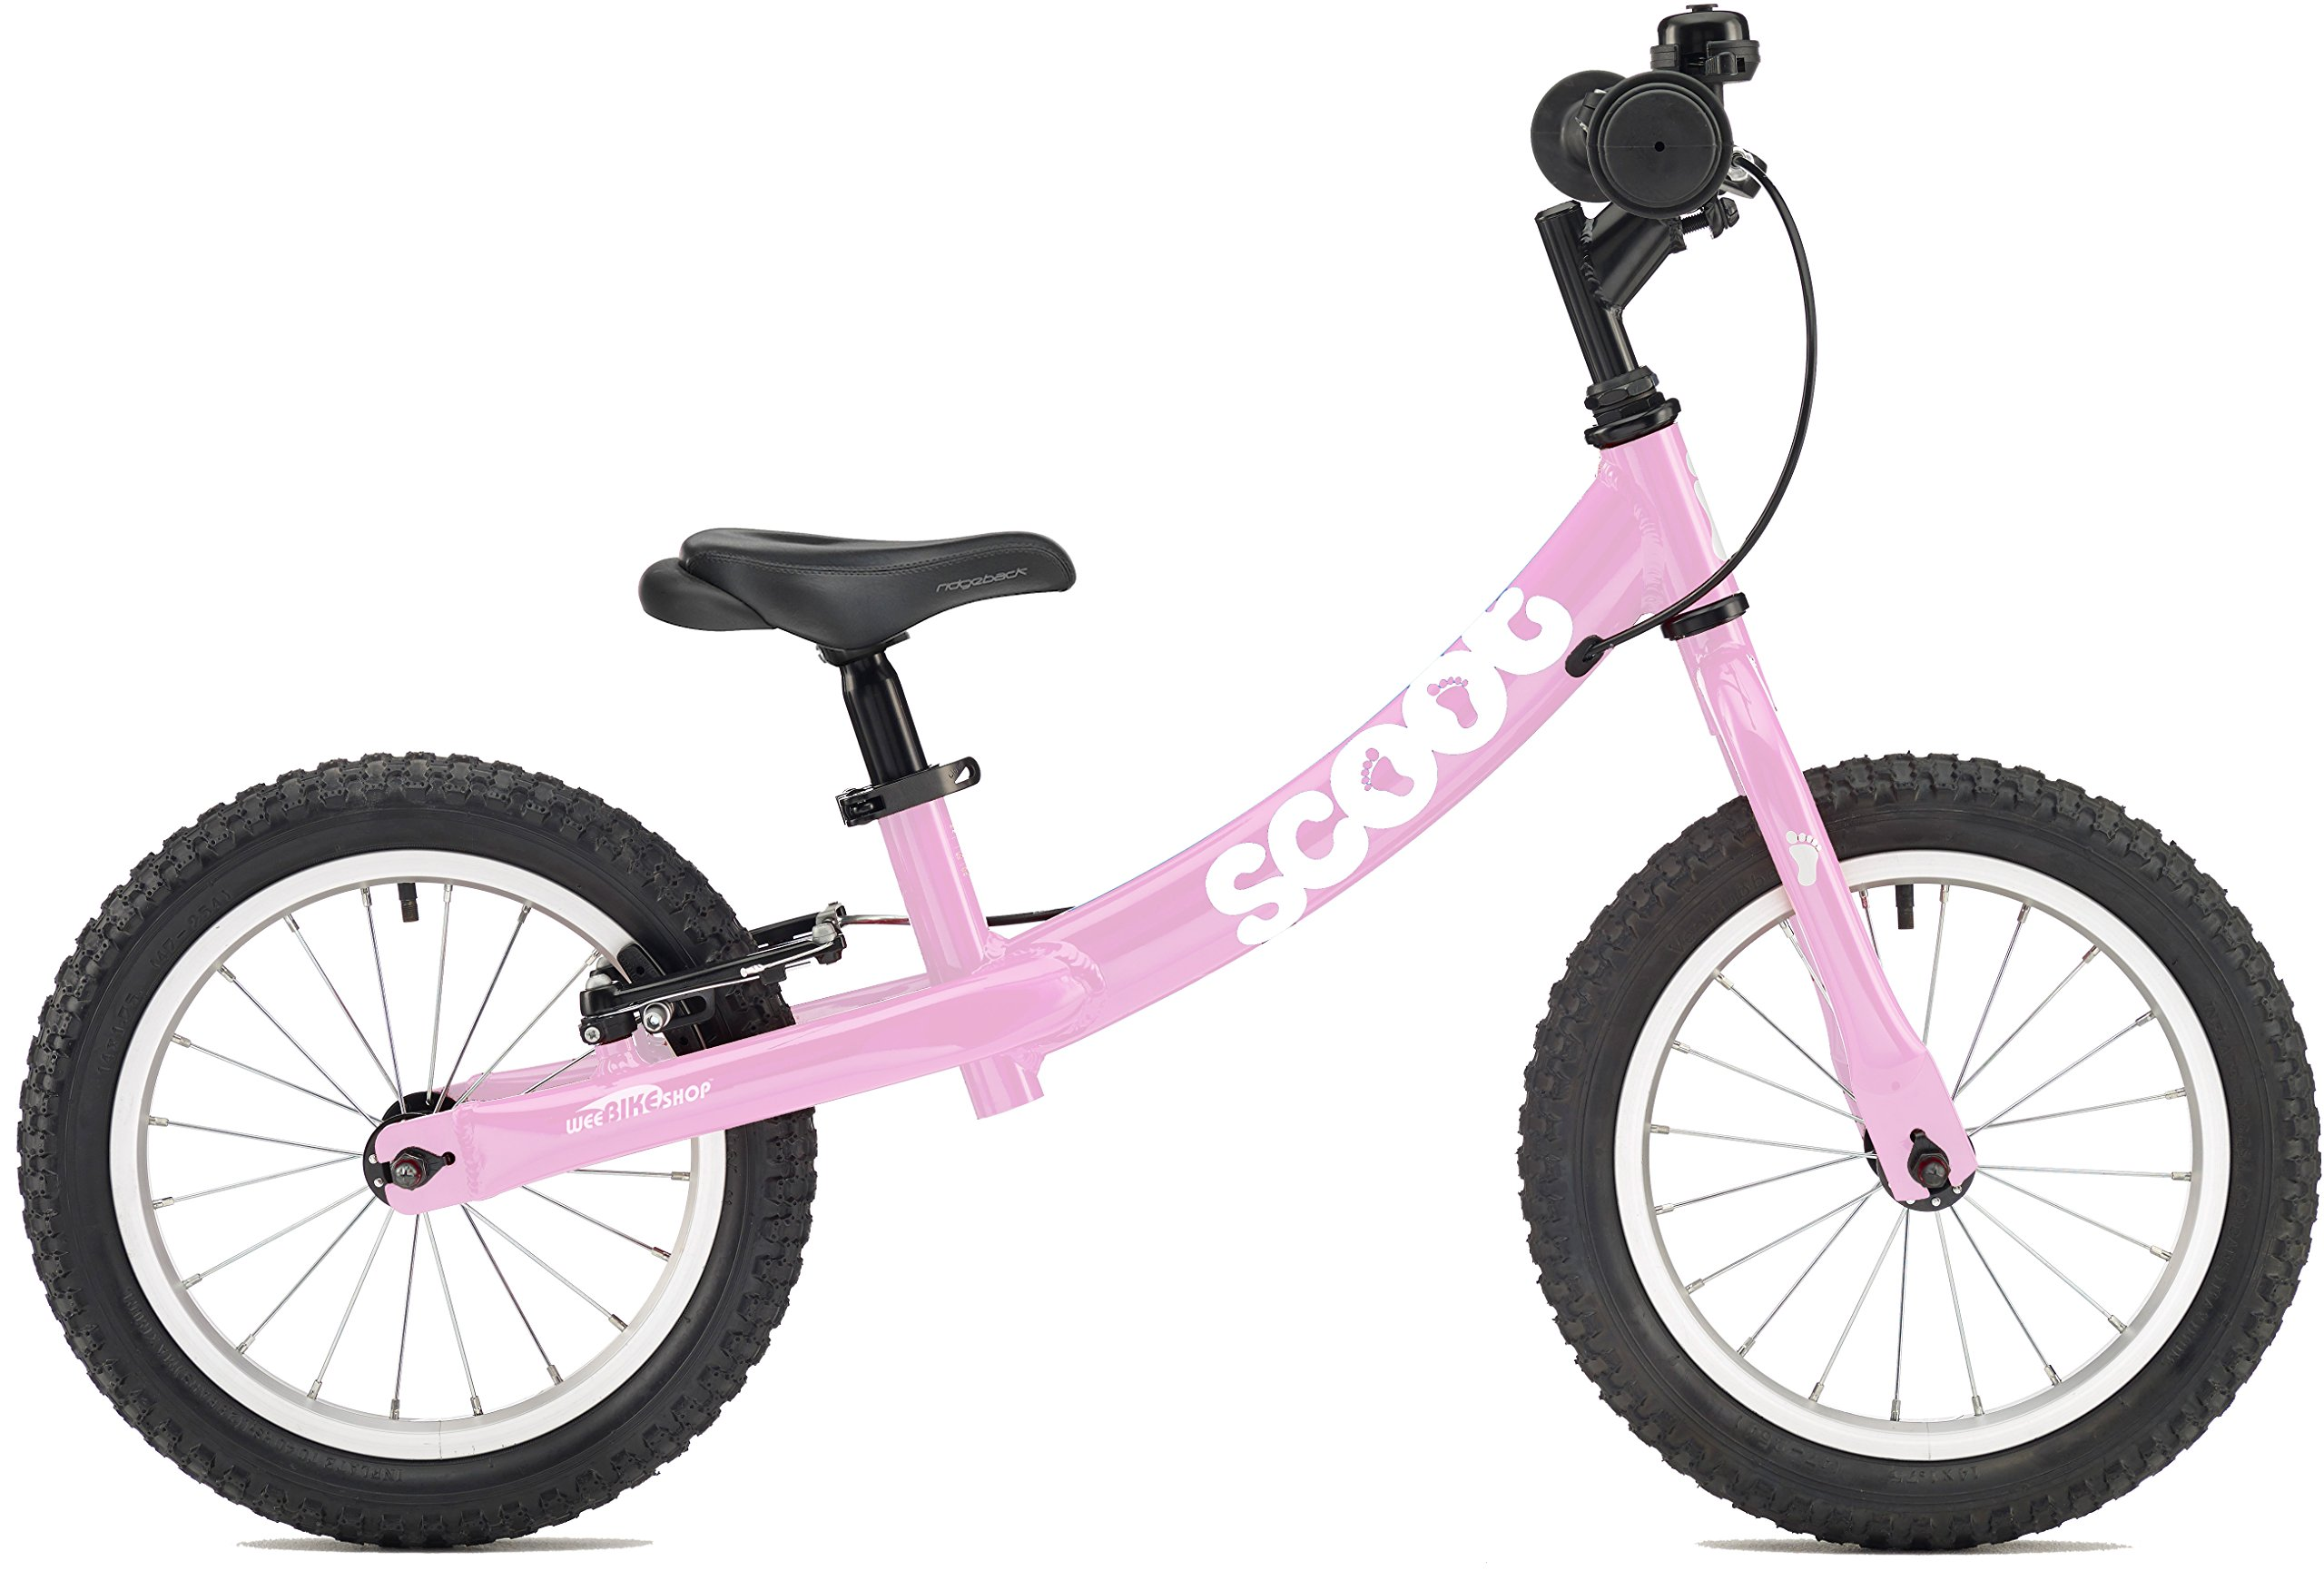 2018 US Edition Scoot XL 14'' Balance Bike in Pink (Age 4-7)